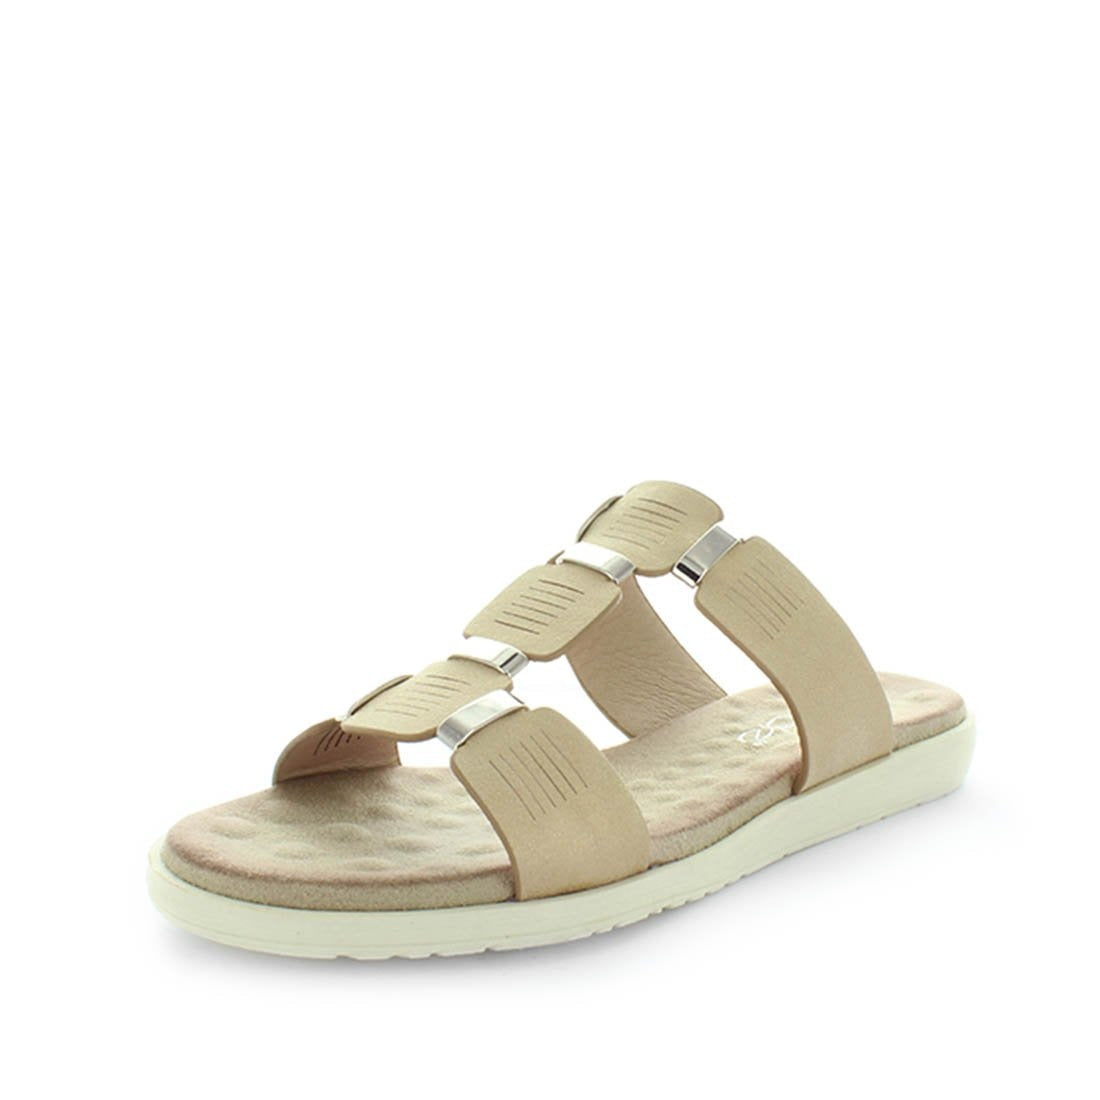 womens slides, womens summer sandals, womens slip on sandals, wilde shoes